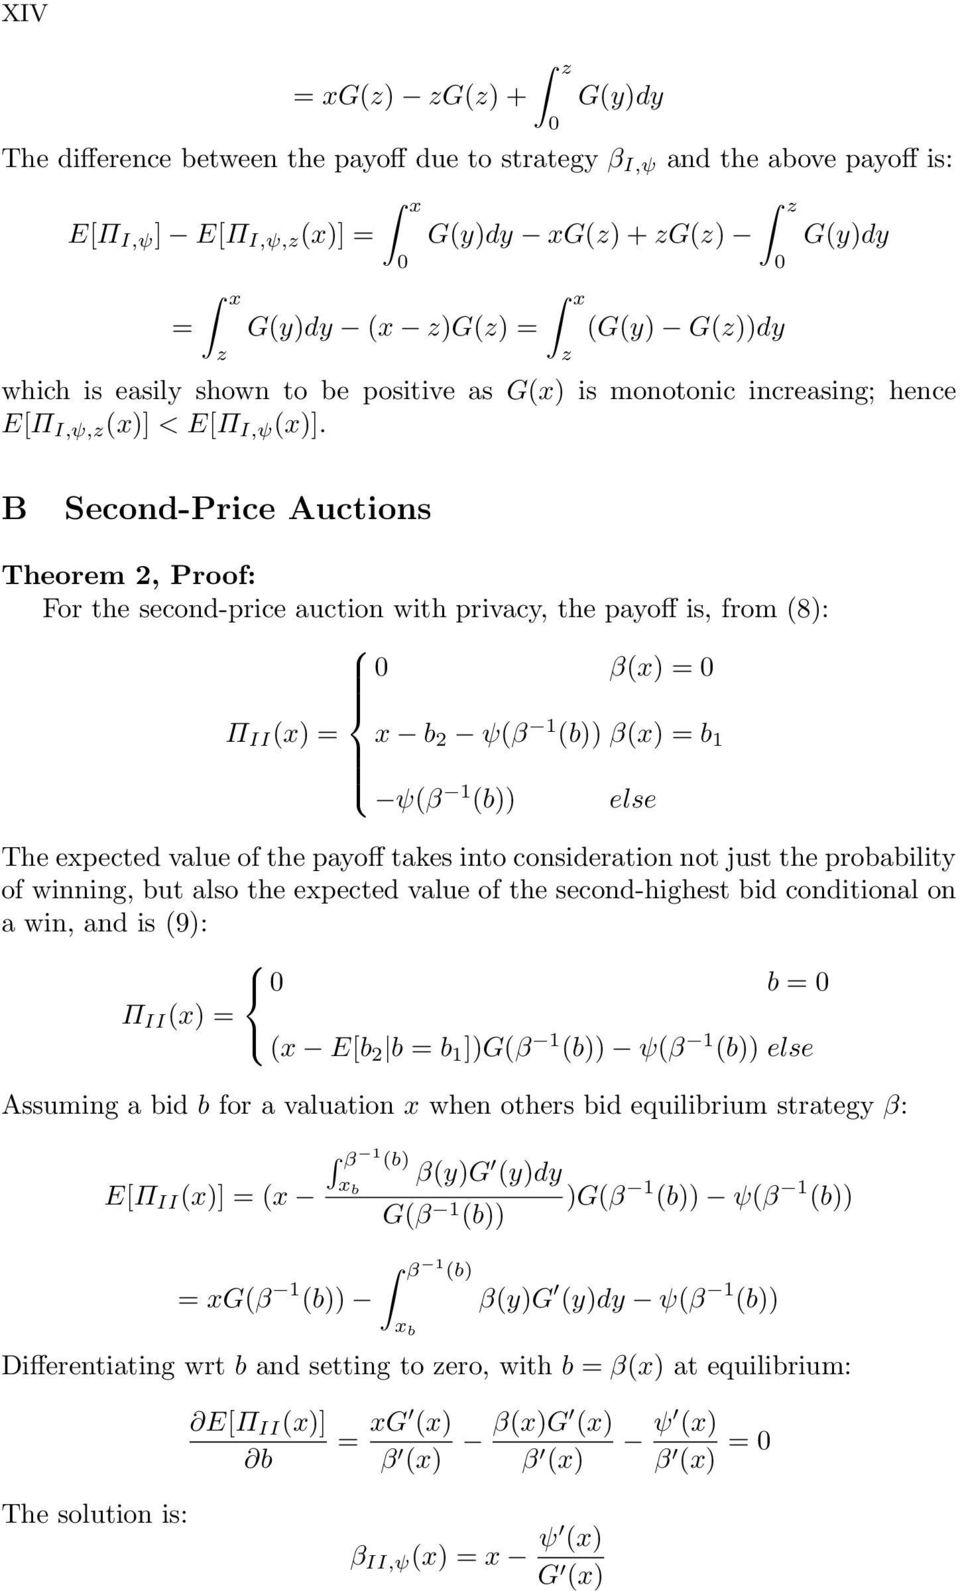 B Second-Price Auctions Theorem 2, Proof: For the second-price auction with privacy, the payoff is, from (8): β(x) = Π II (x) = x b 2 ψ(β 1 (b)) β(x) = b 1 ψ(β 1 (b)) The expected value of the payoff